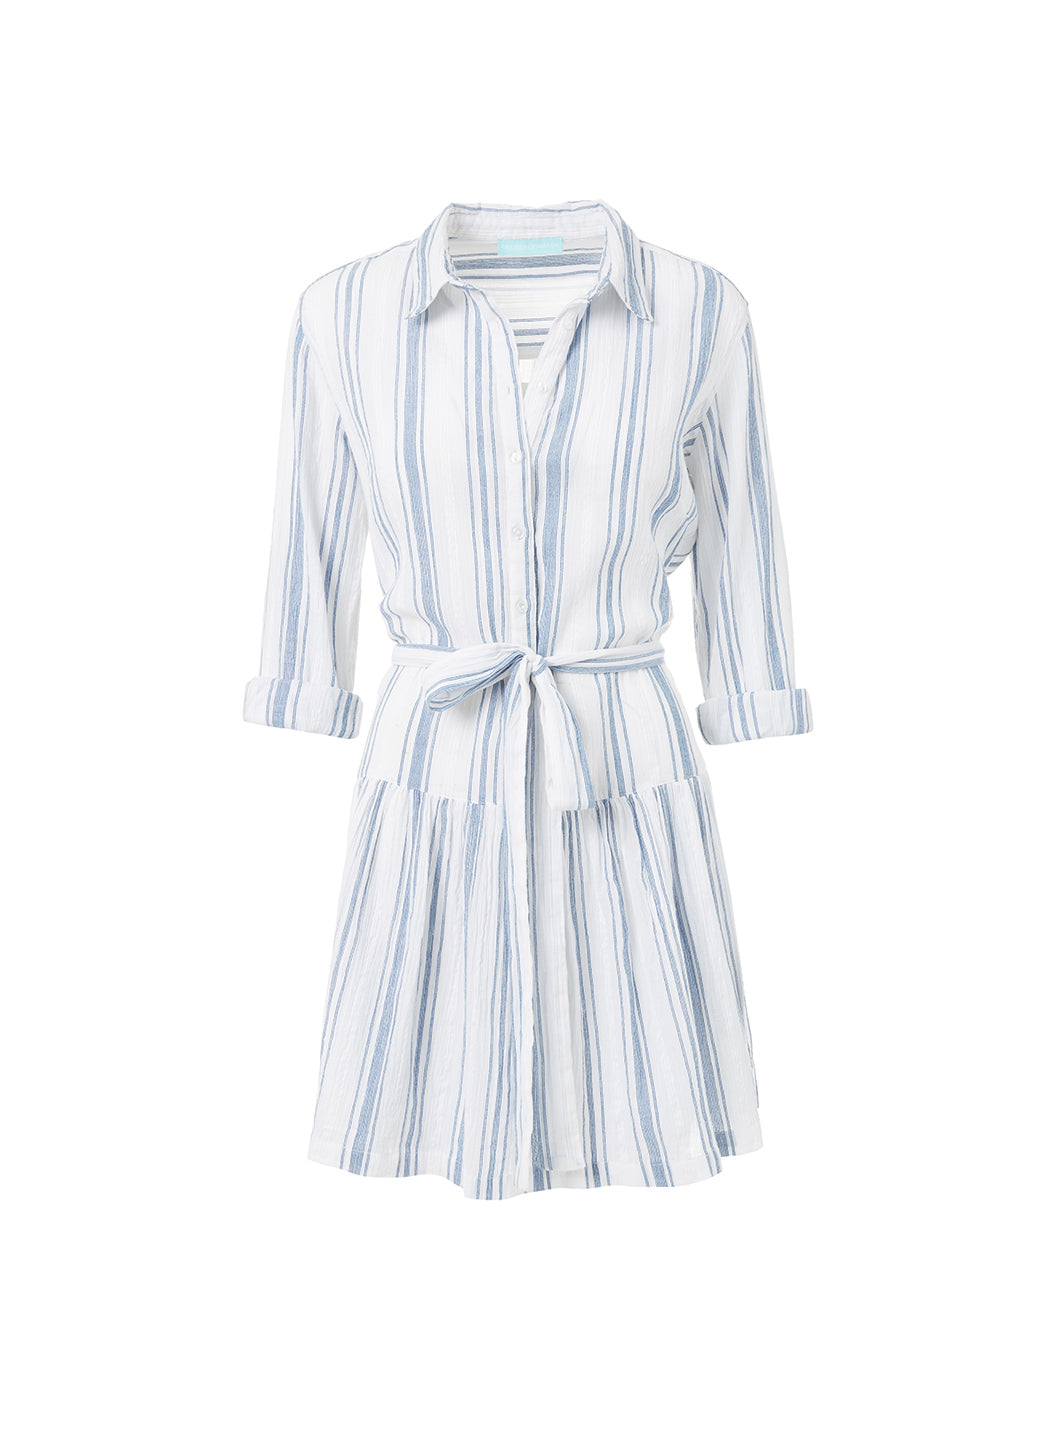 Amelia Blue Stripe Short Belted Shirt Dress  - Melissa Odabash Dresses & Kaftans